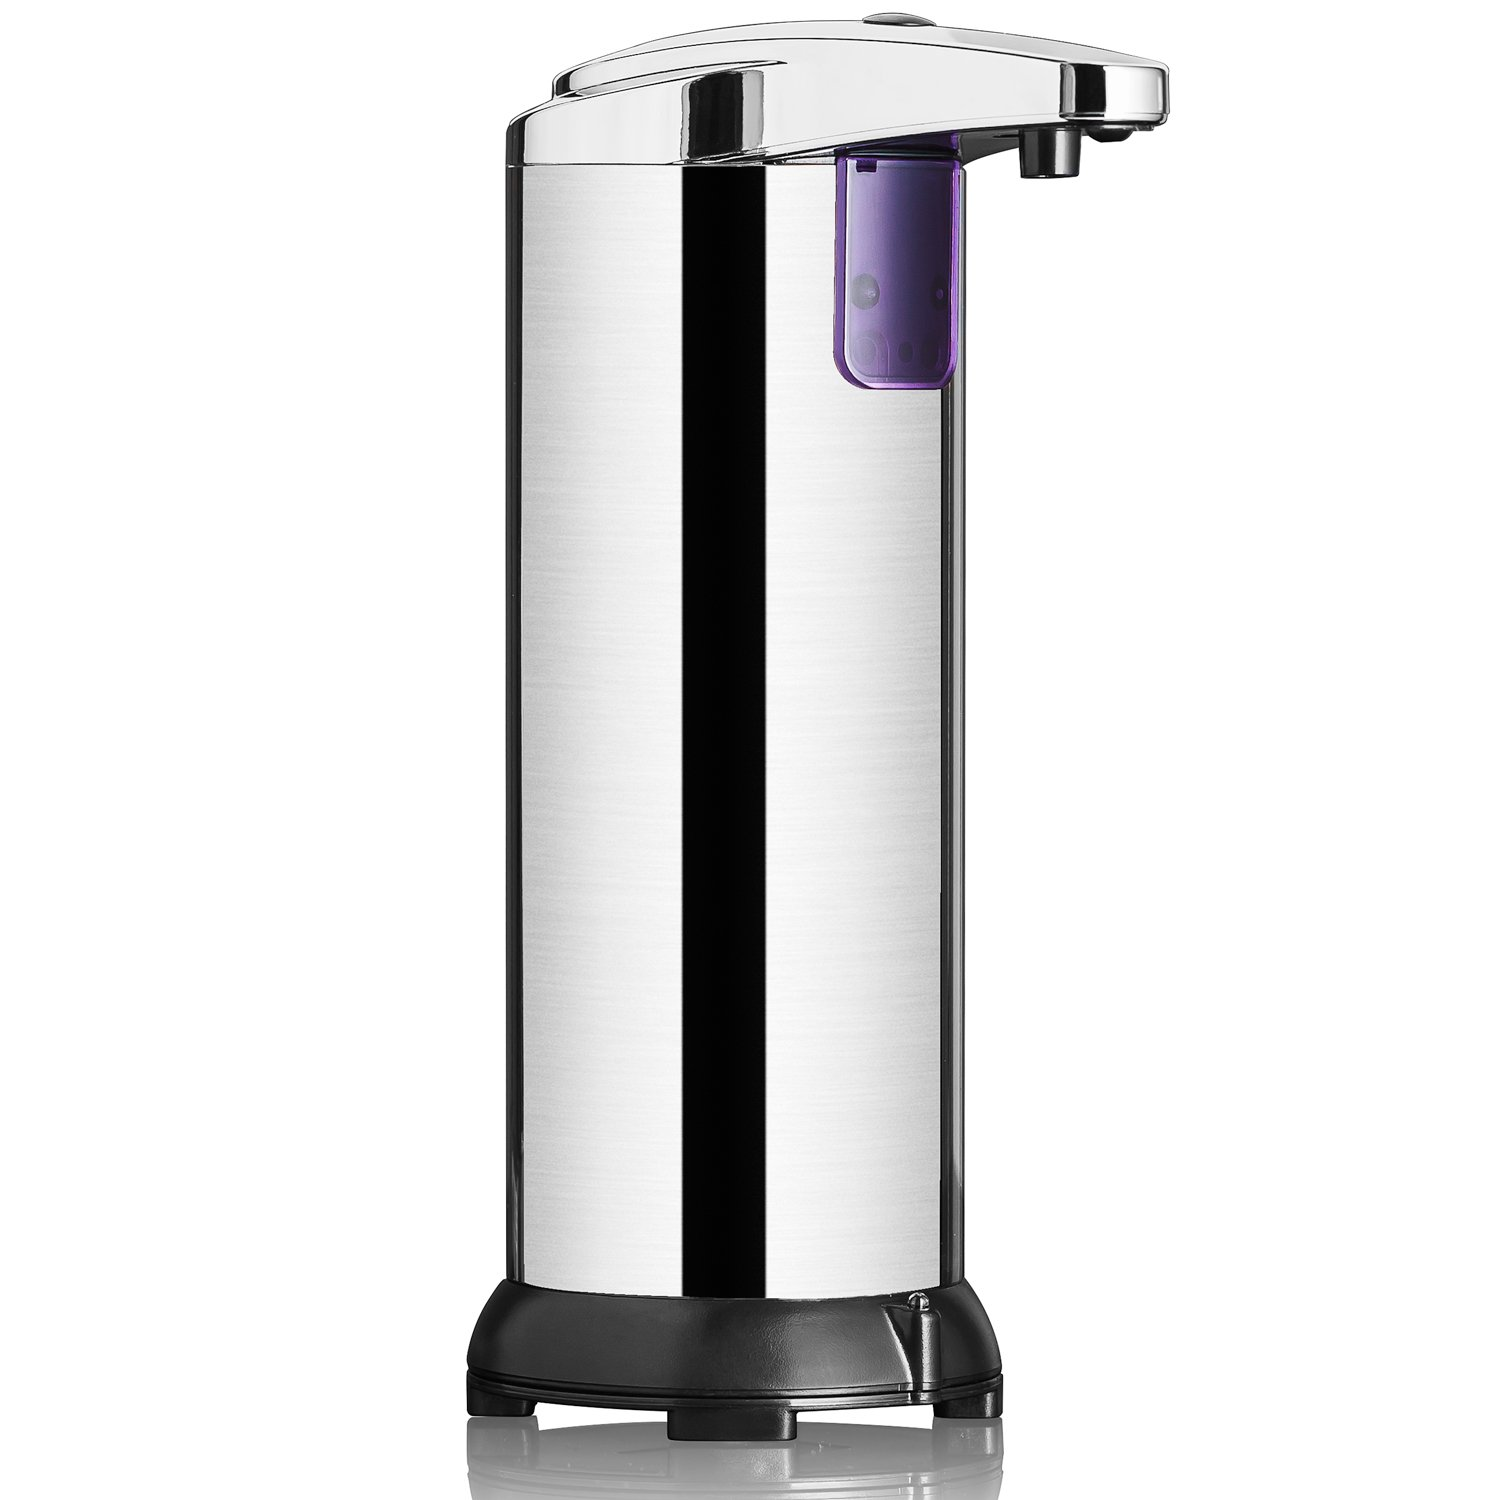 ClearMax Automatic Soap Dispenser, Premium Stainless Steel Auto Touchless Soap Dispenser w/Hands Free IR Infrared Motion Sensor, for Kitchen & Bathroom (2nd Generation)